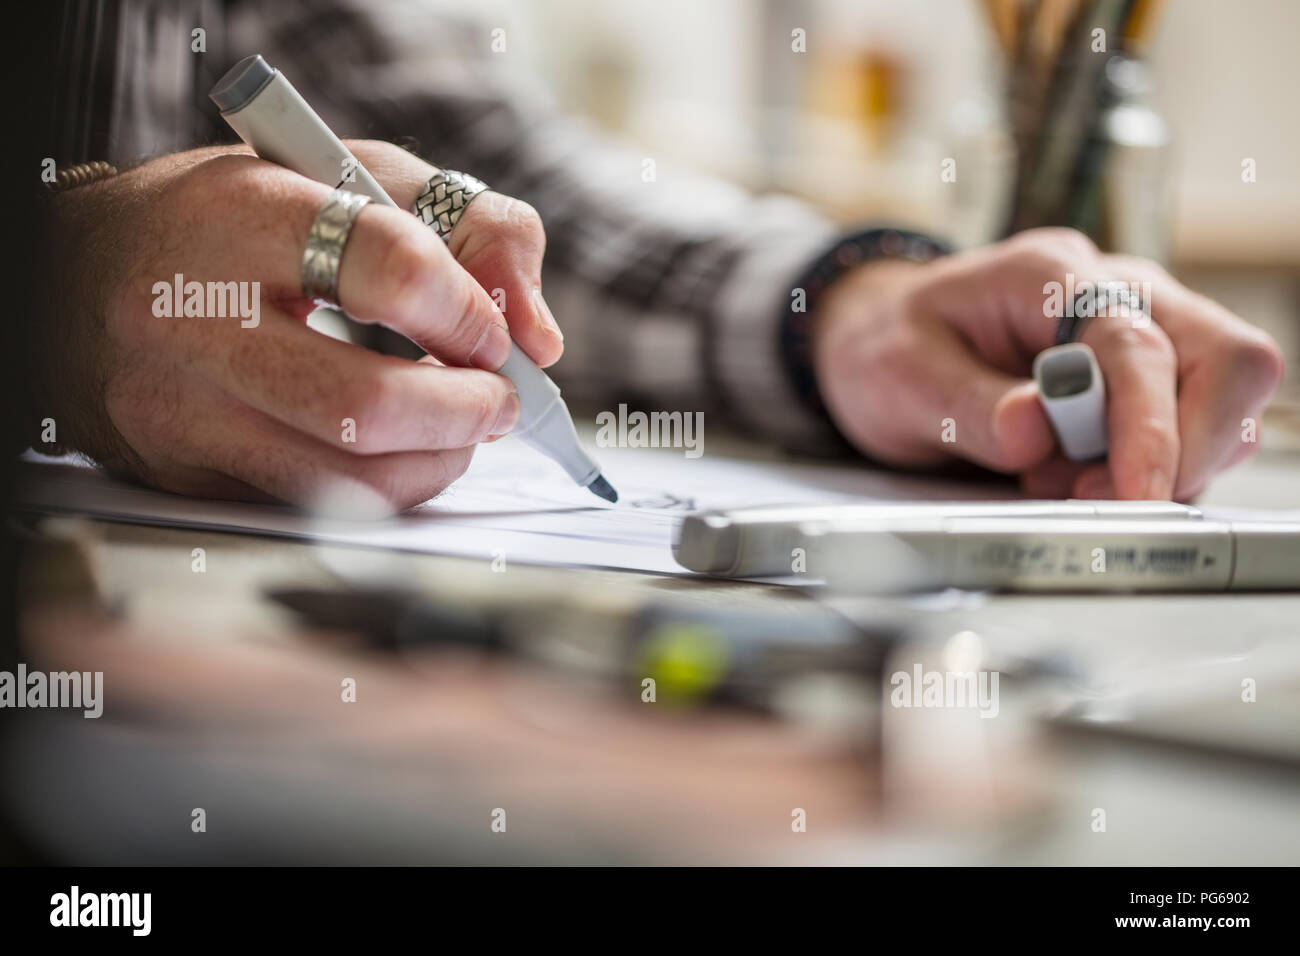 Close-up of artist drawing a sketch - Stock Image